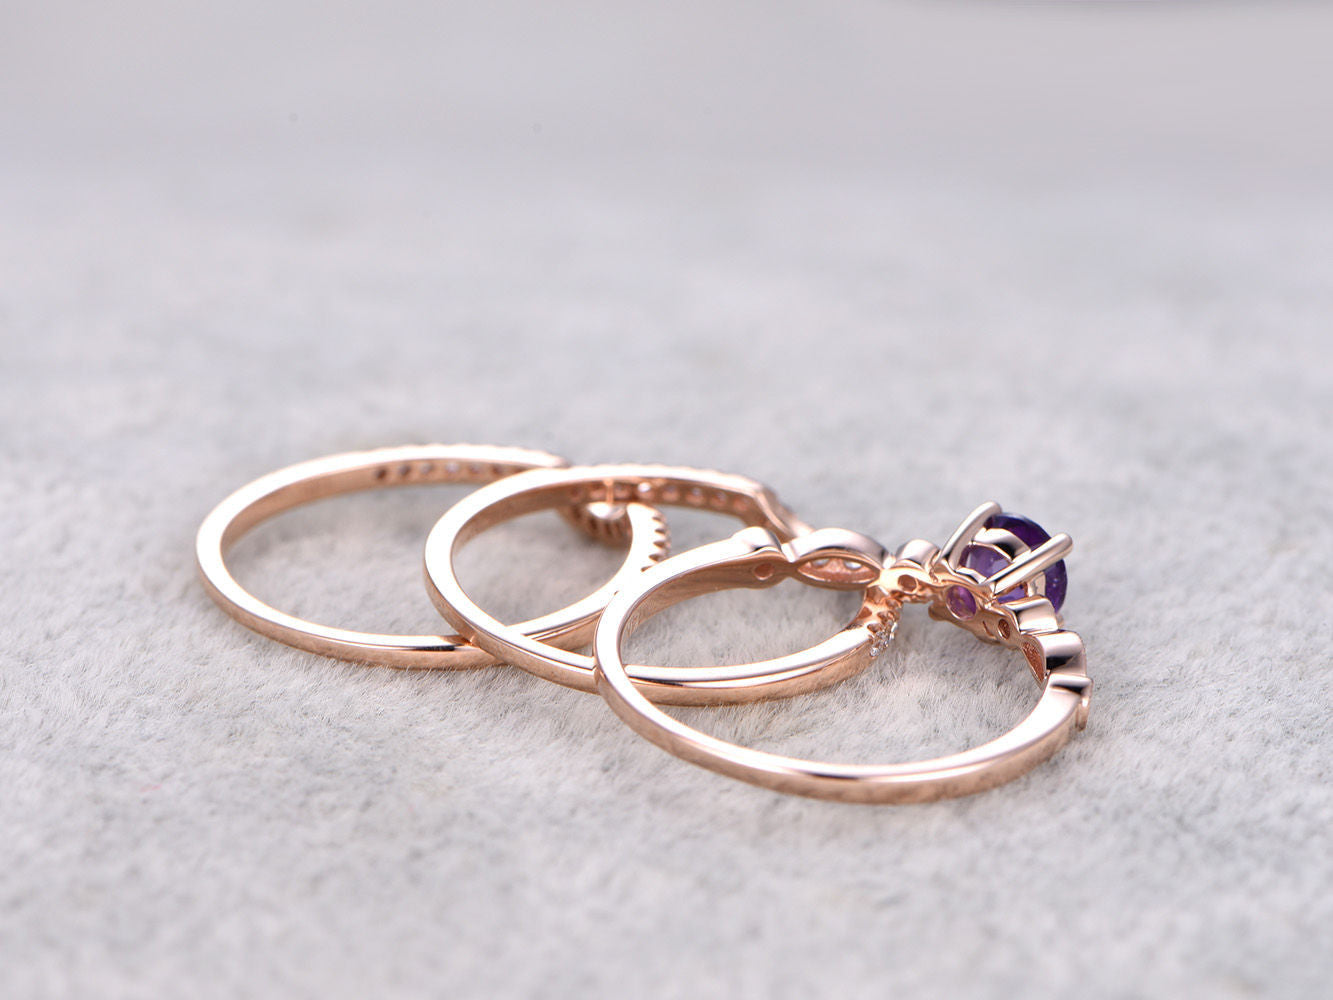 3pcs Purple Amethyst Engagement ring set,Diamond wedding band,Art Deco,14K Rose Gold,Promise Ring,Bridal Ring,Curved Matching band,Milgrain